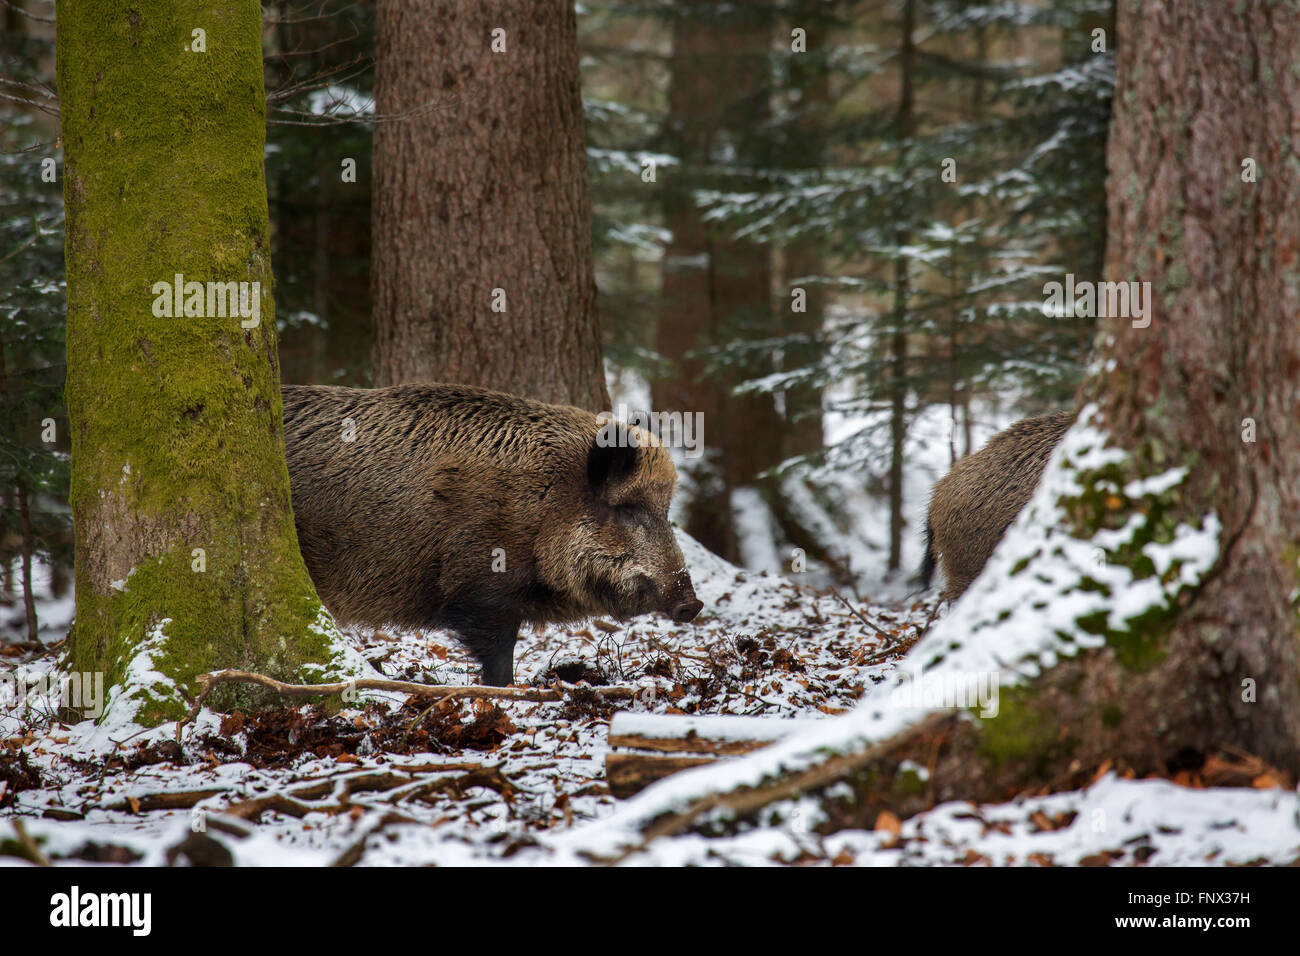 Wild boars (Sus scrofa) foraging in pine forest in the snow in winter - Stock Image